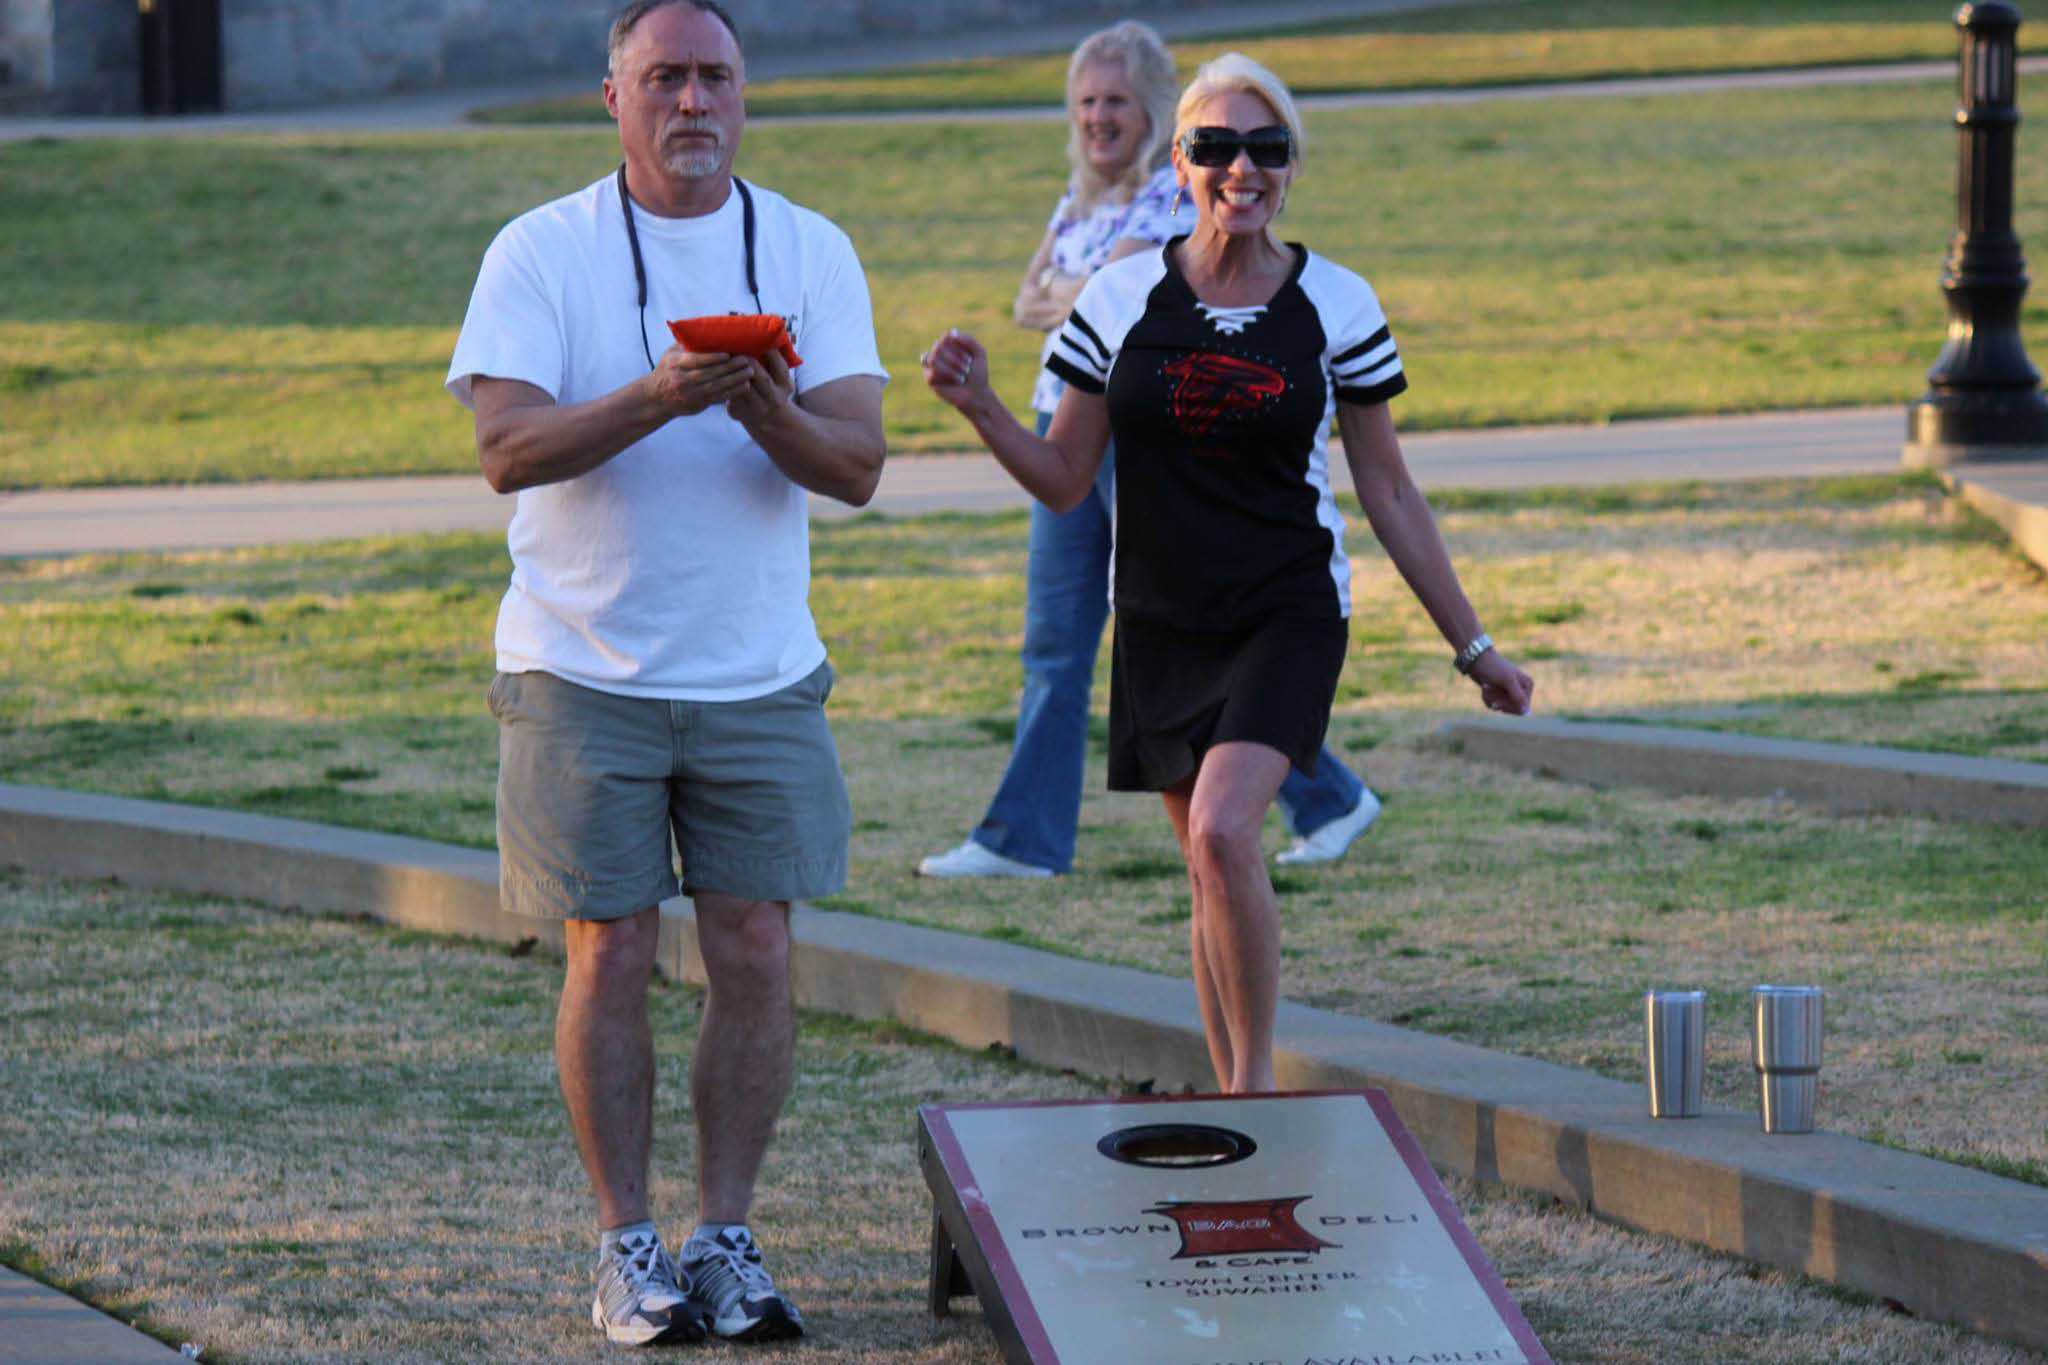 Join a team and play at our next Peach State Cornhole event